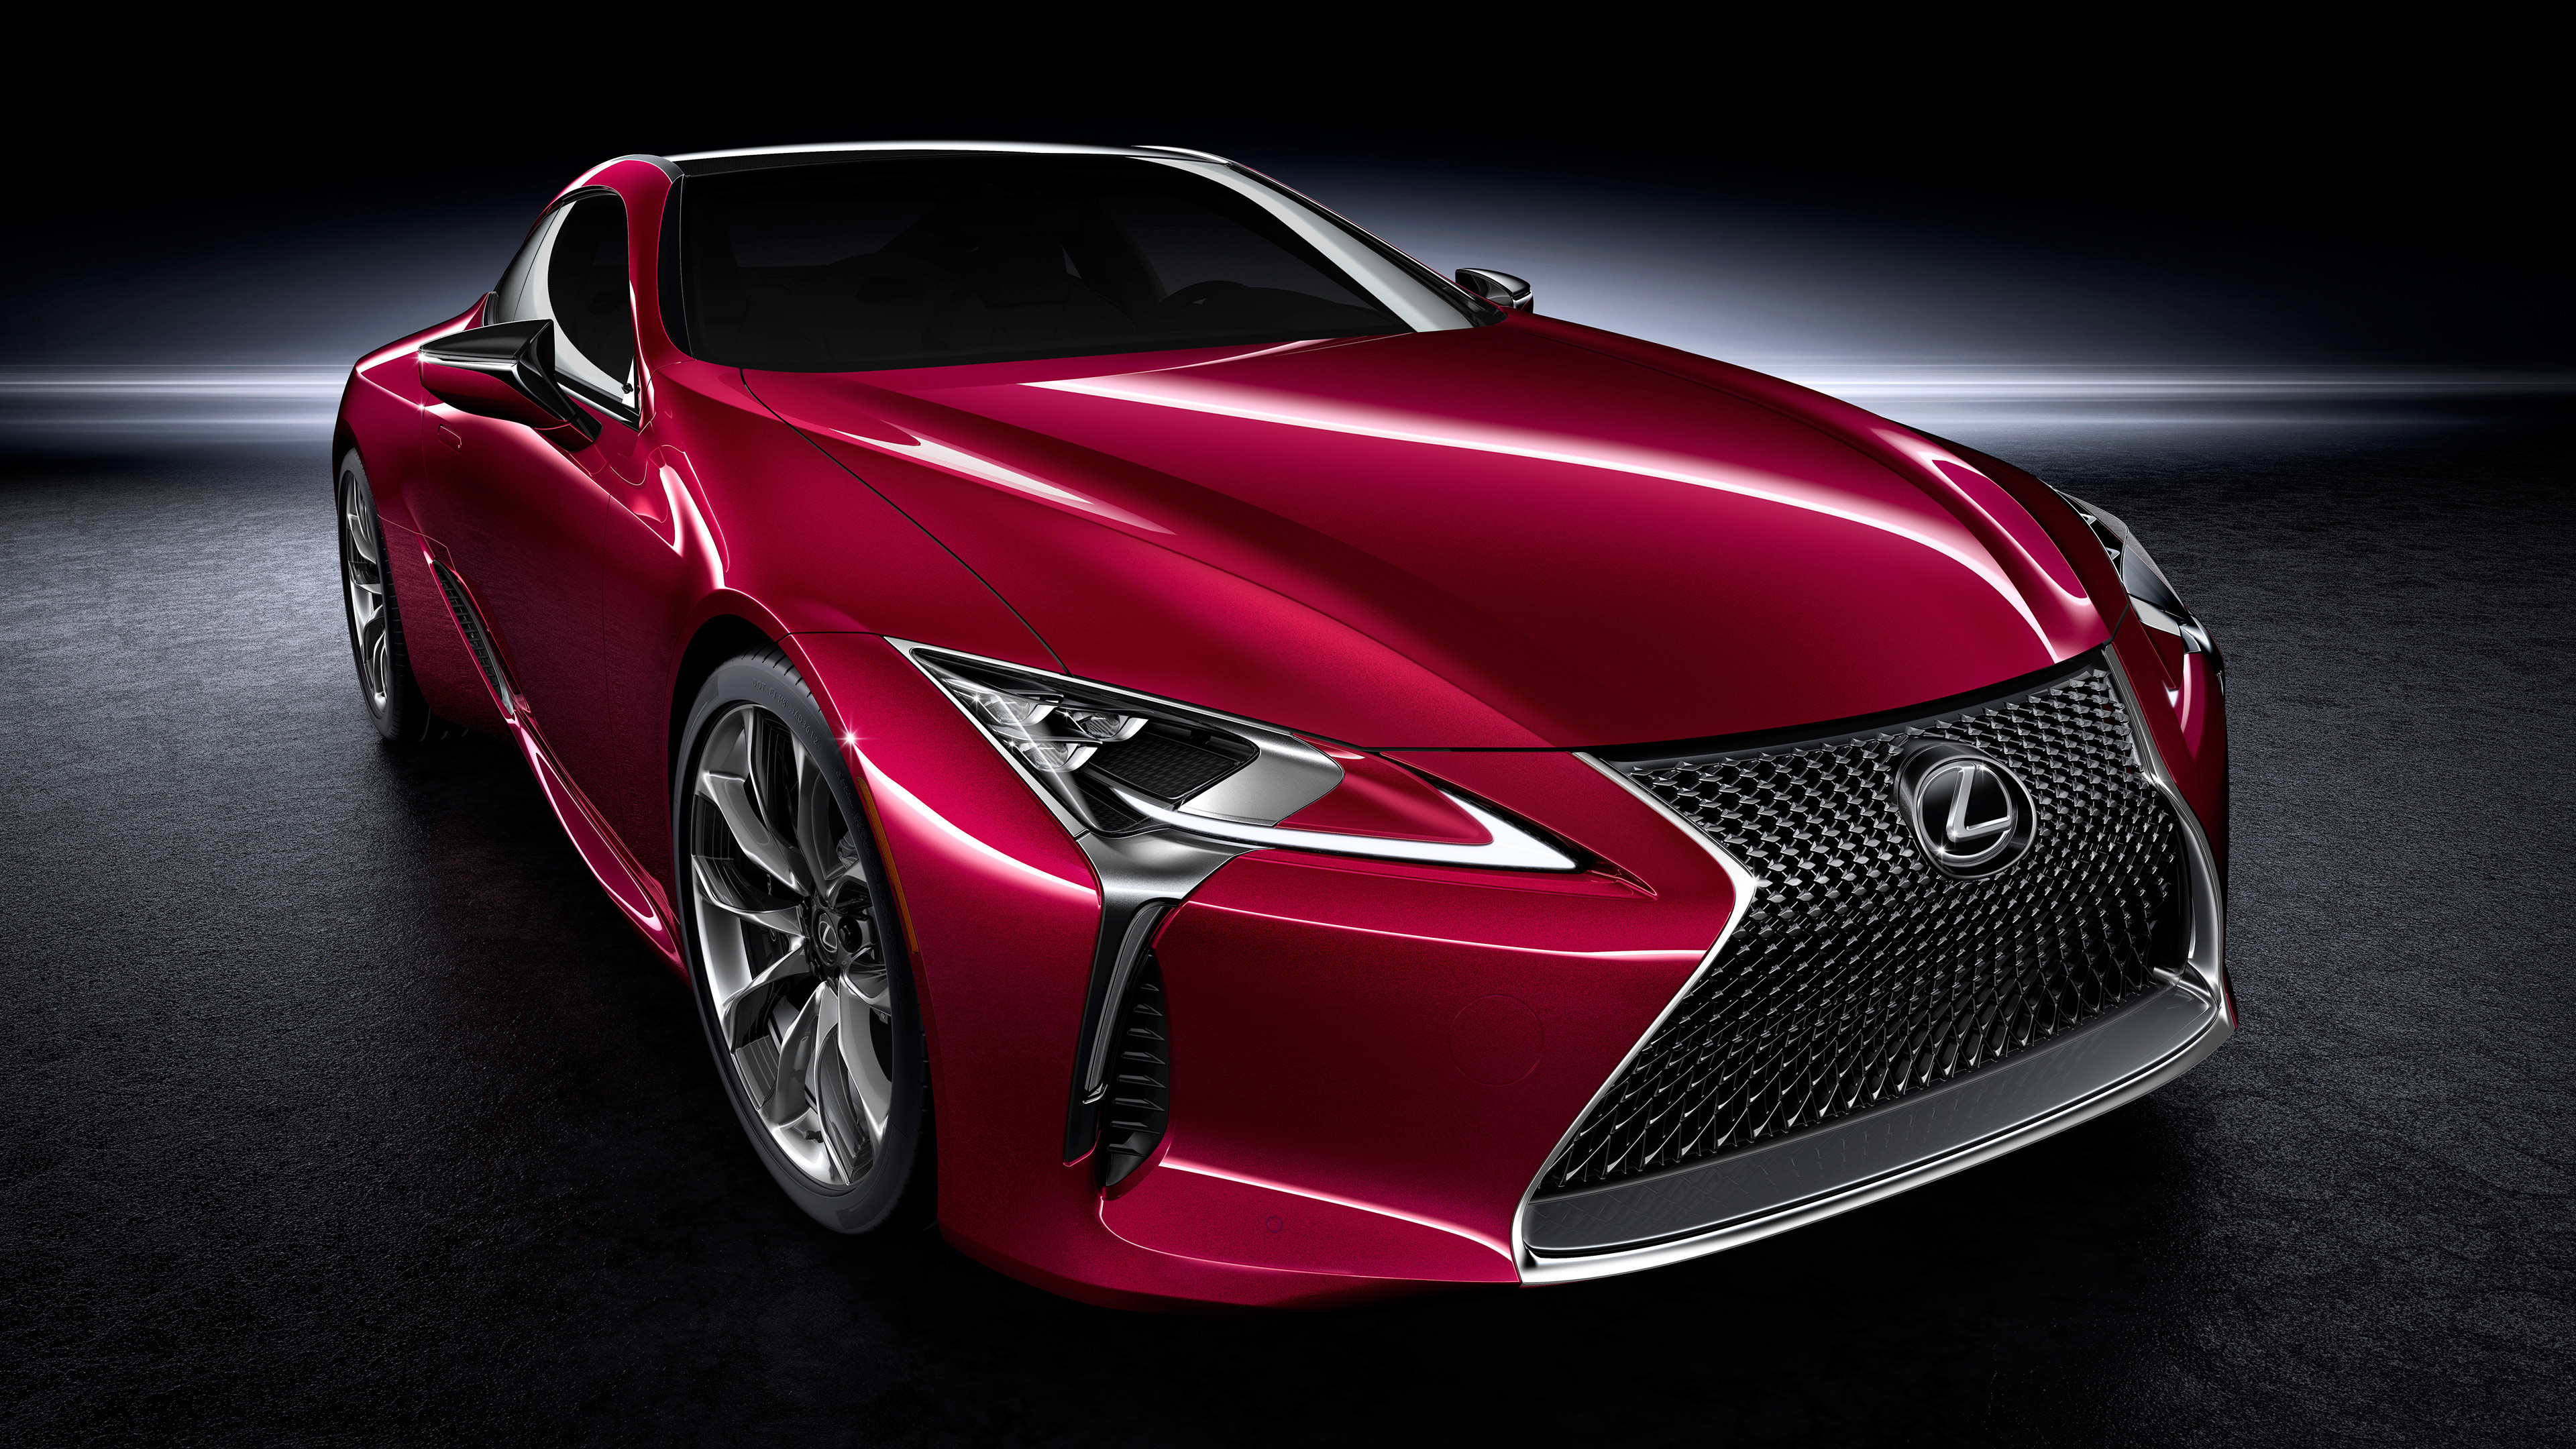 lexus lc500 wallpapers carfeed. Black Bedroom Furniture Sets. Home Design Ideas